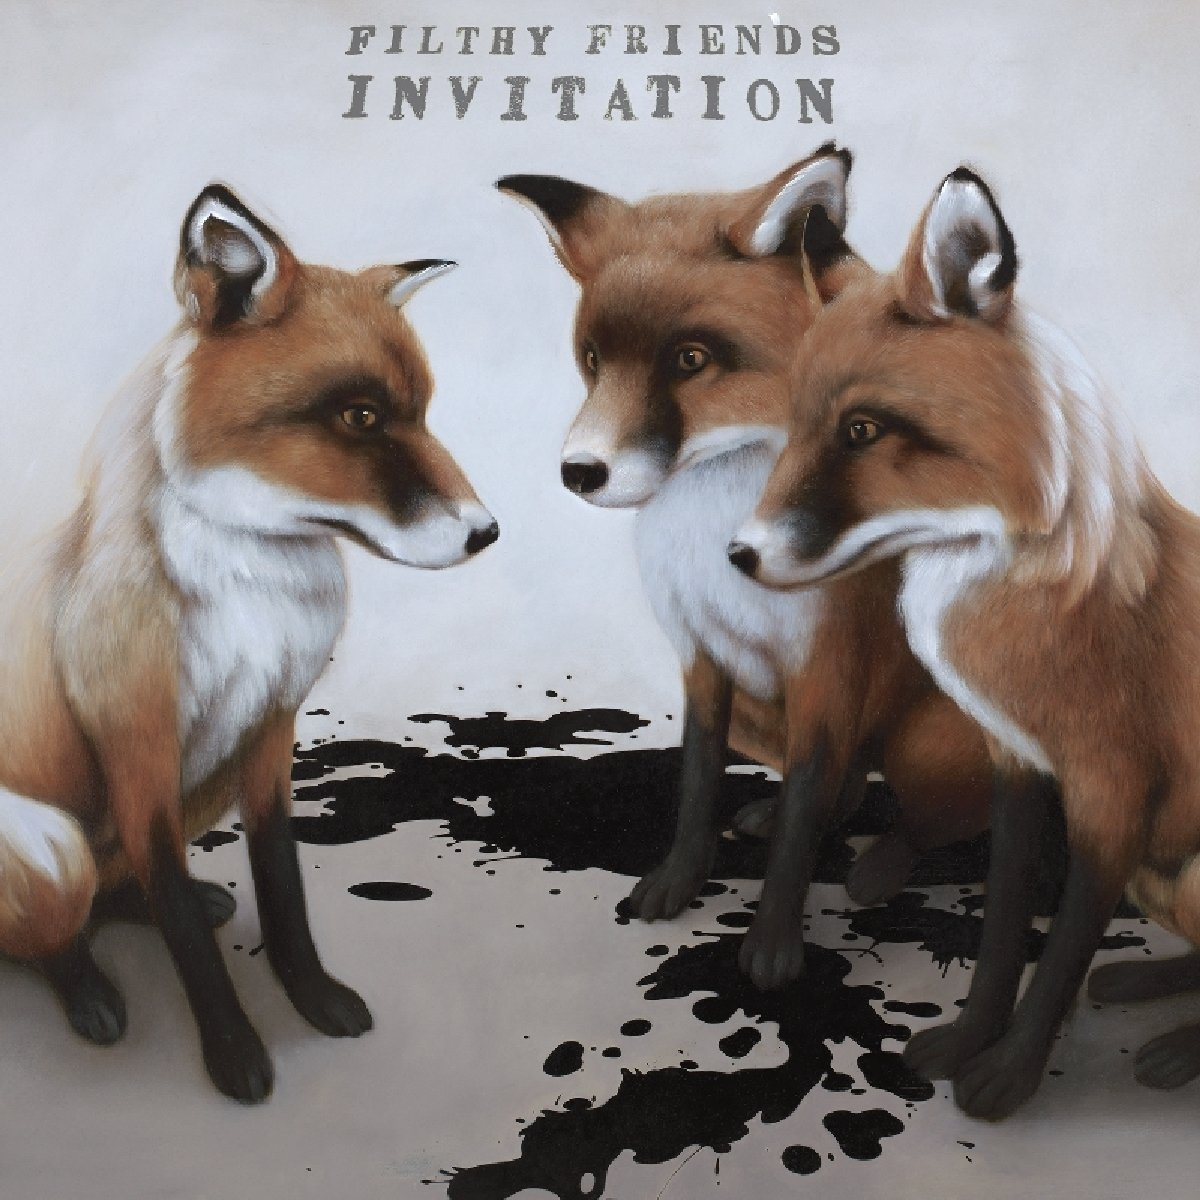 Invitation (LP) by Filthy Friends image